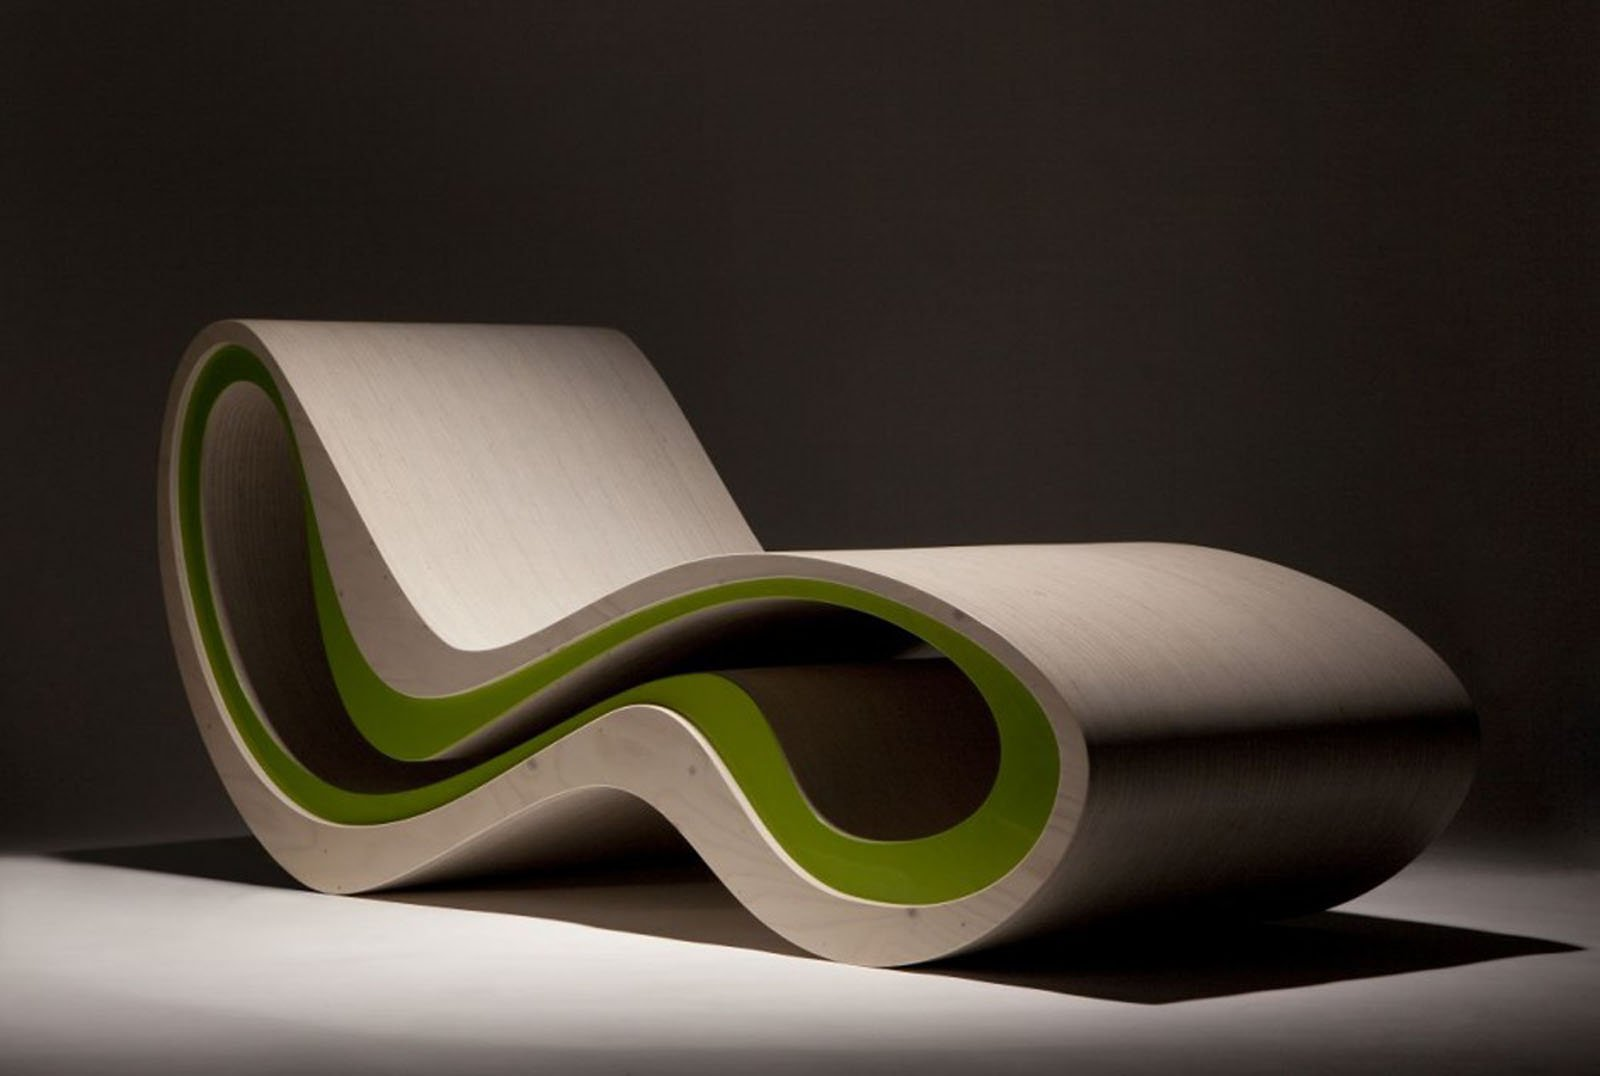 Modern Furniture Design Ideas Some Incredible Designs Of Innovative Modern Furniture